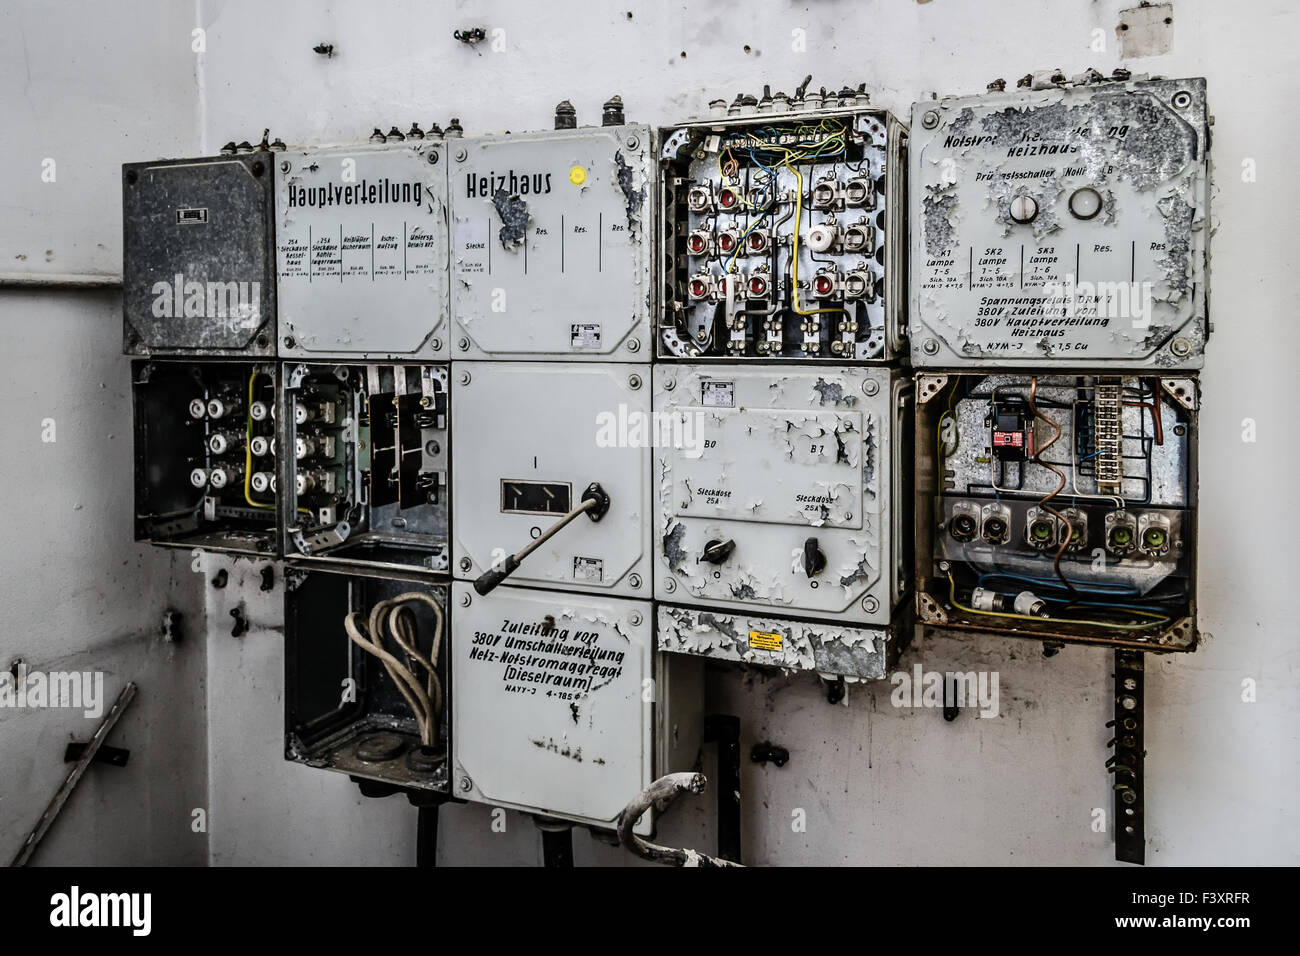 old fuse box F3XRFR old fuse box stock photo, royalty free image 88485035 alamy old fuse box diagram at edmiracle.co